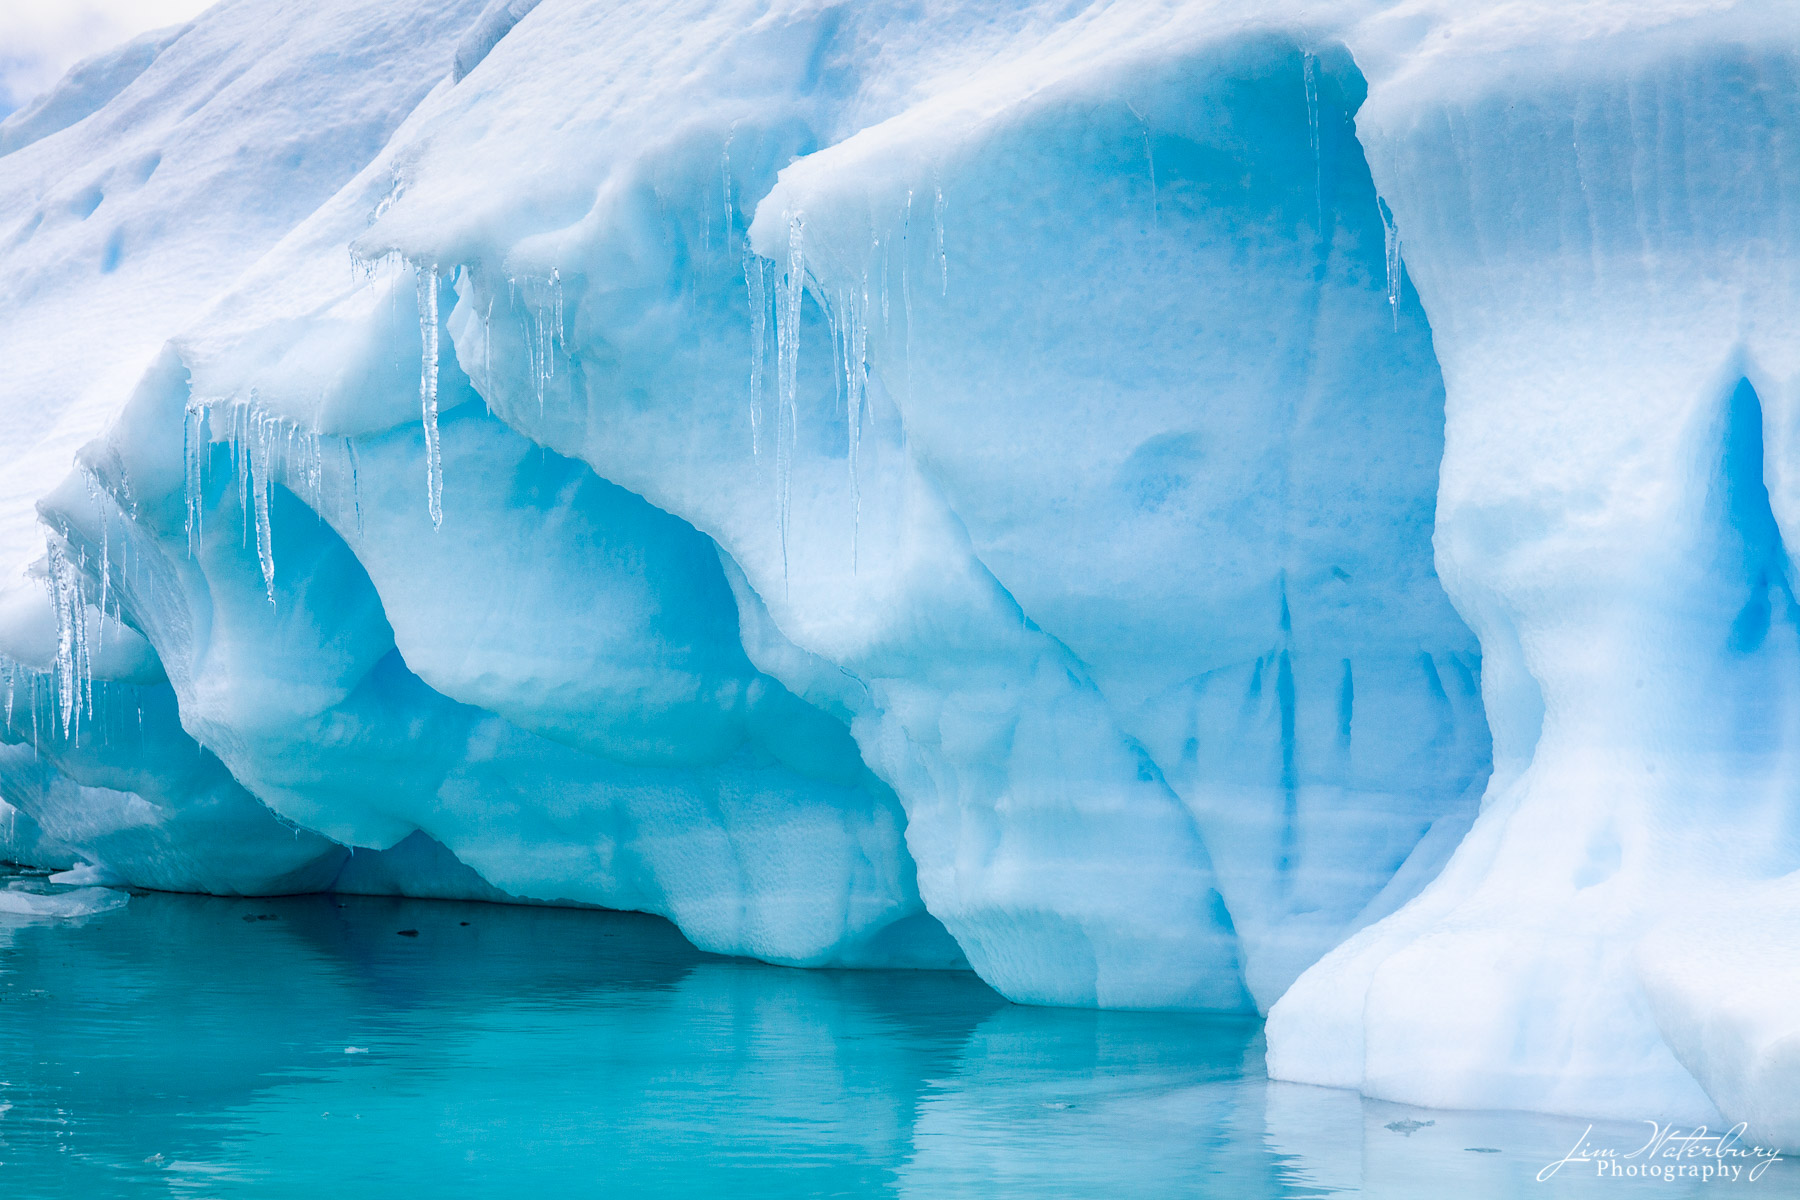 Leaning pillars and icicles on the edge of an iceberg in the Lemaire Channel in Antarctica reflect in the crystal-clear turquoise...